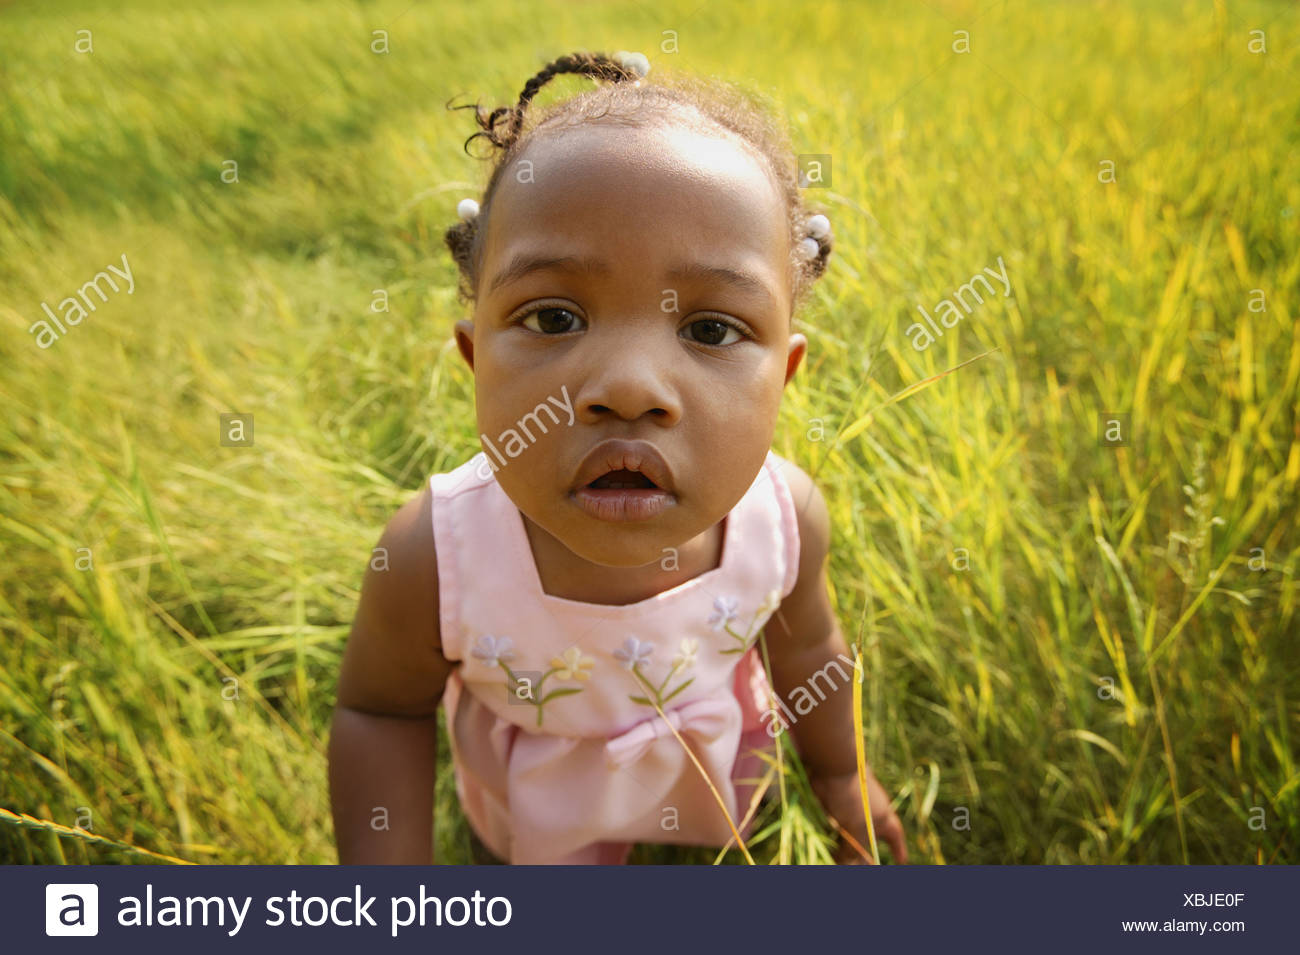 Child in a field - Stock Image